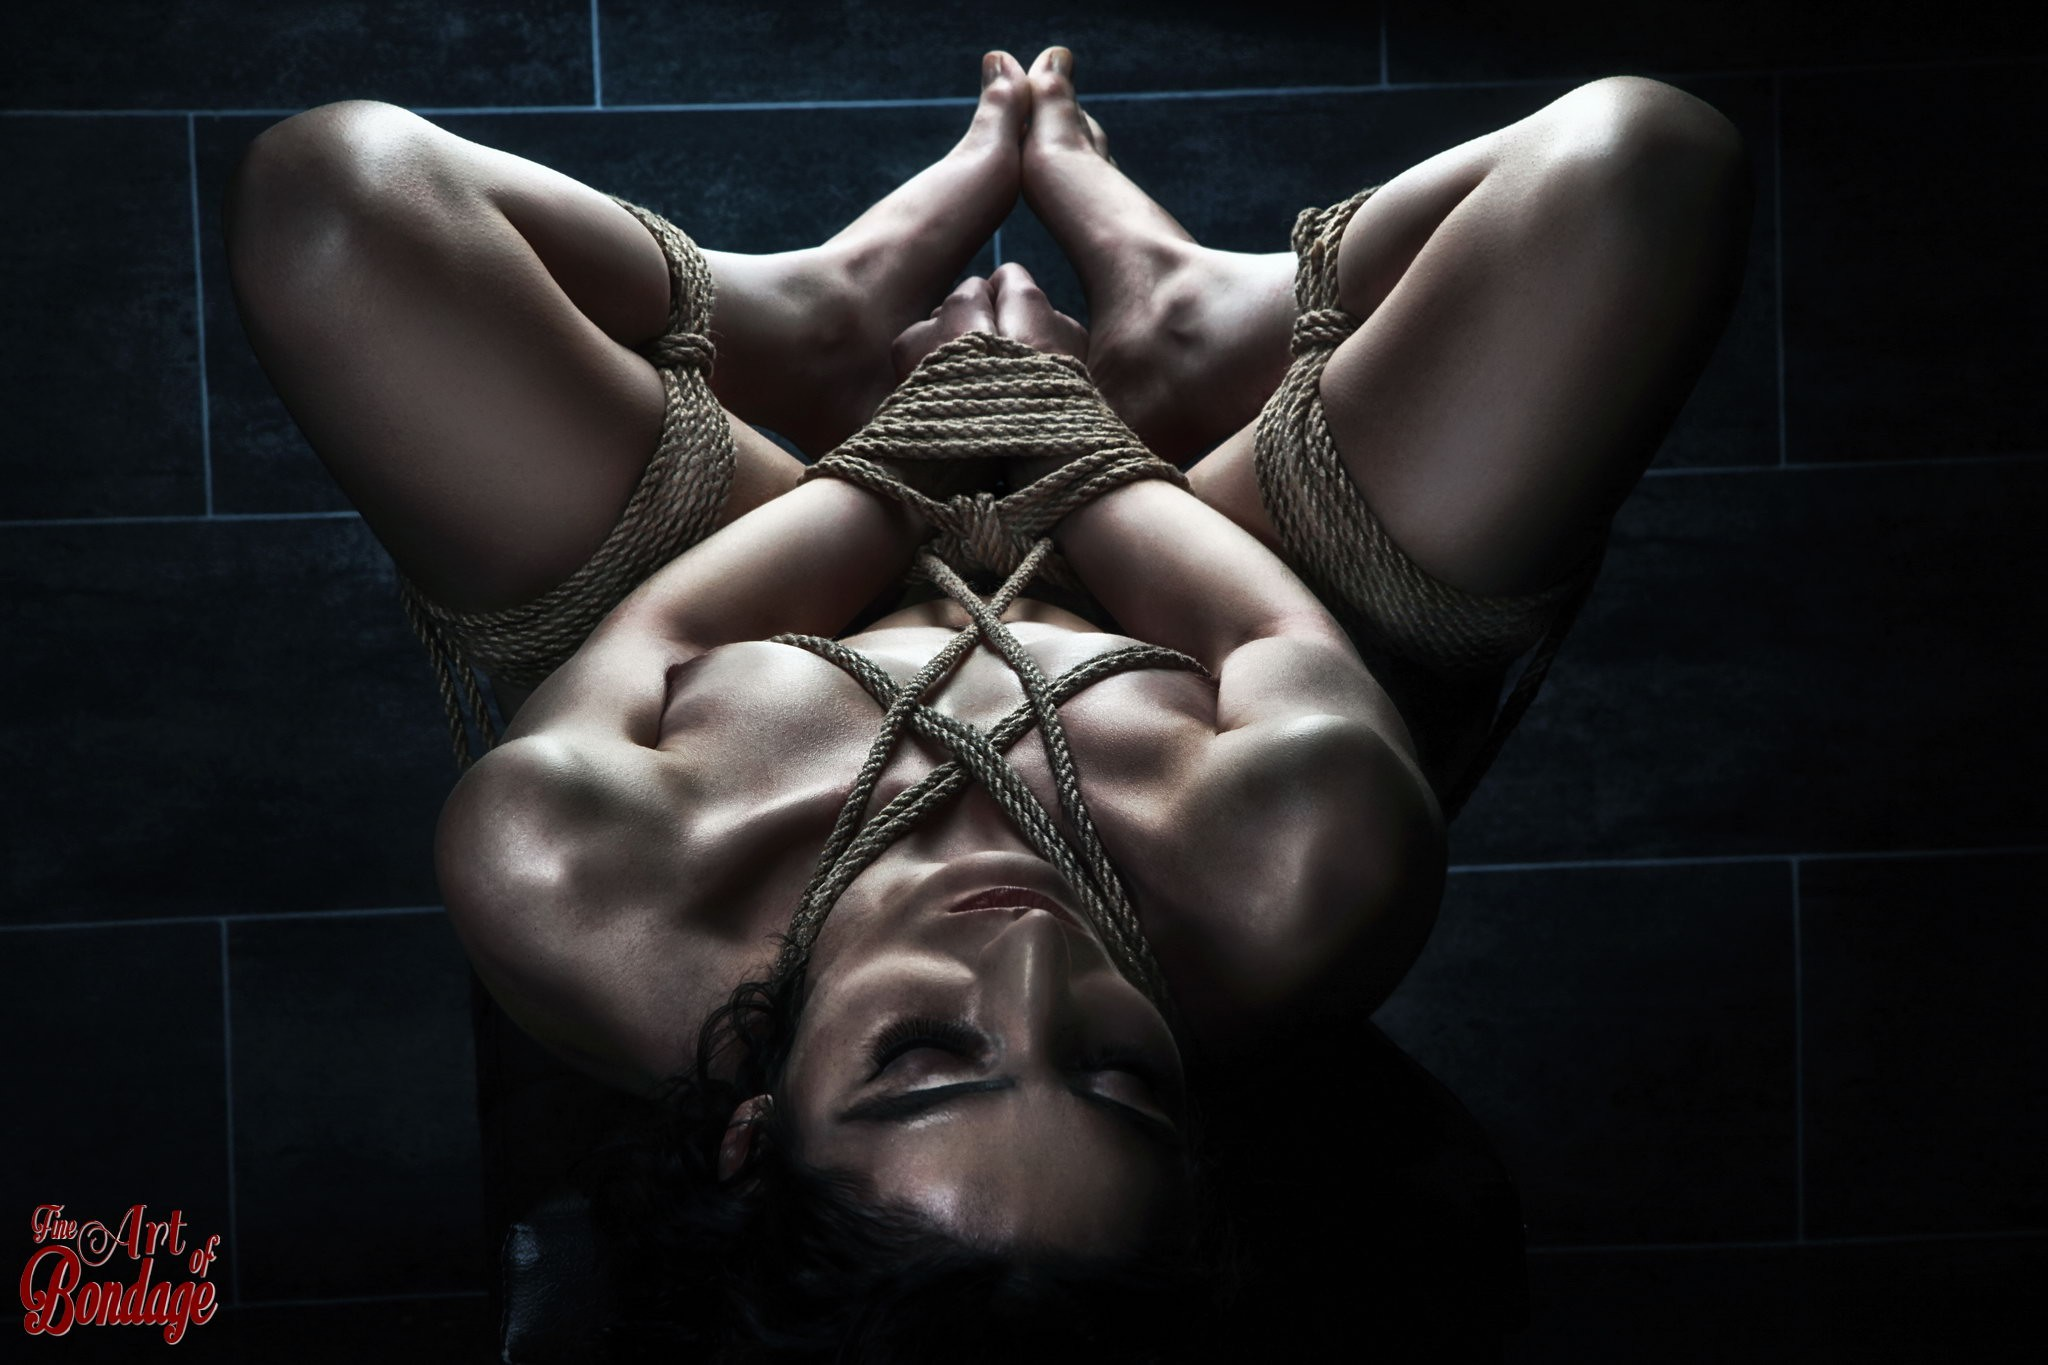 Nude tied up art 7